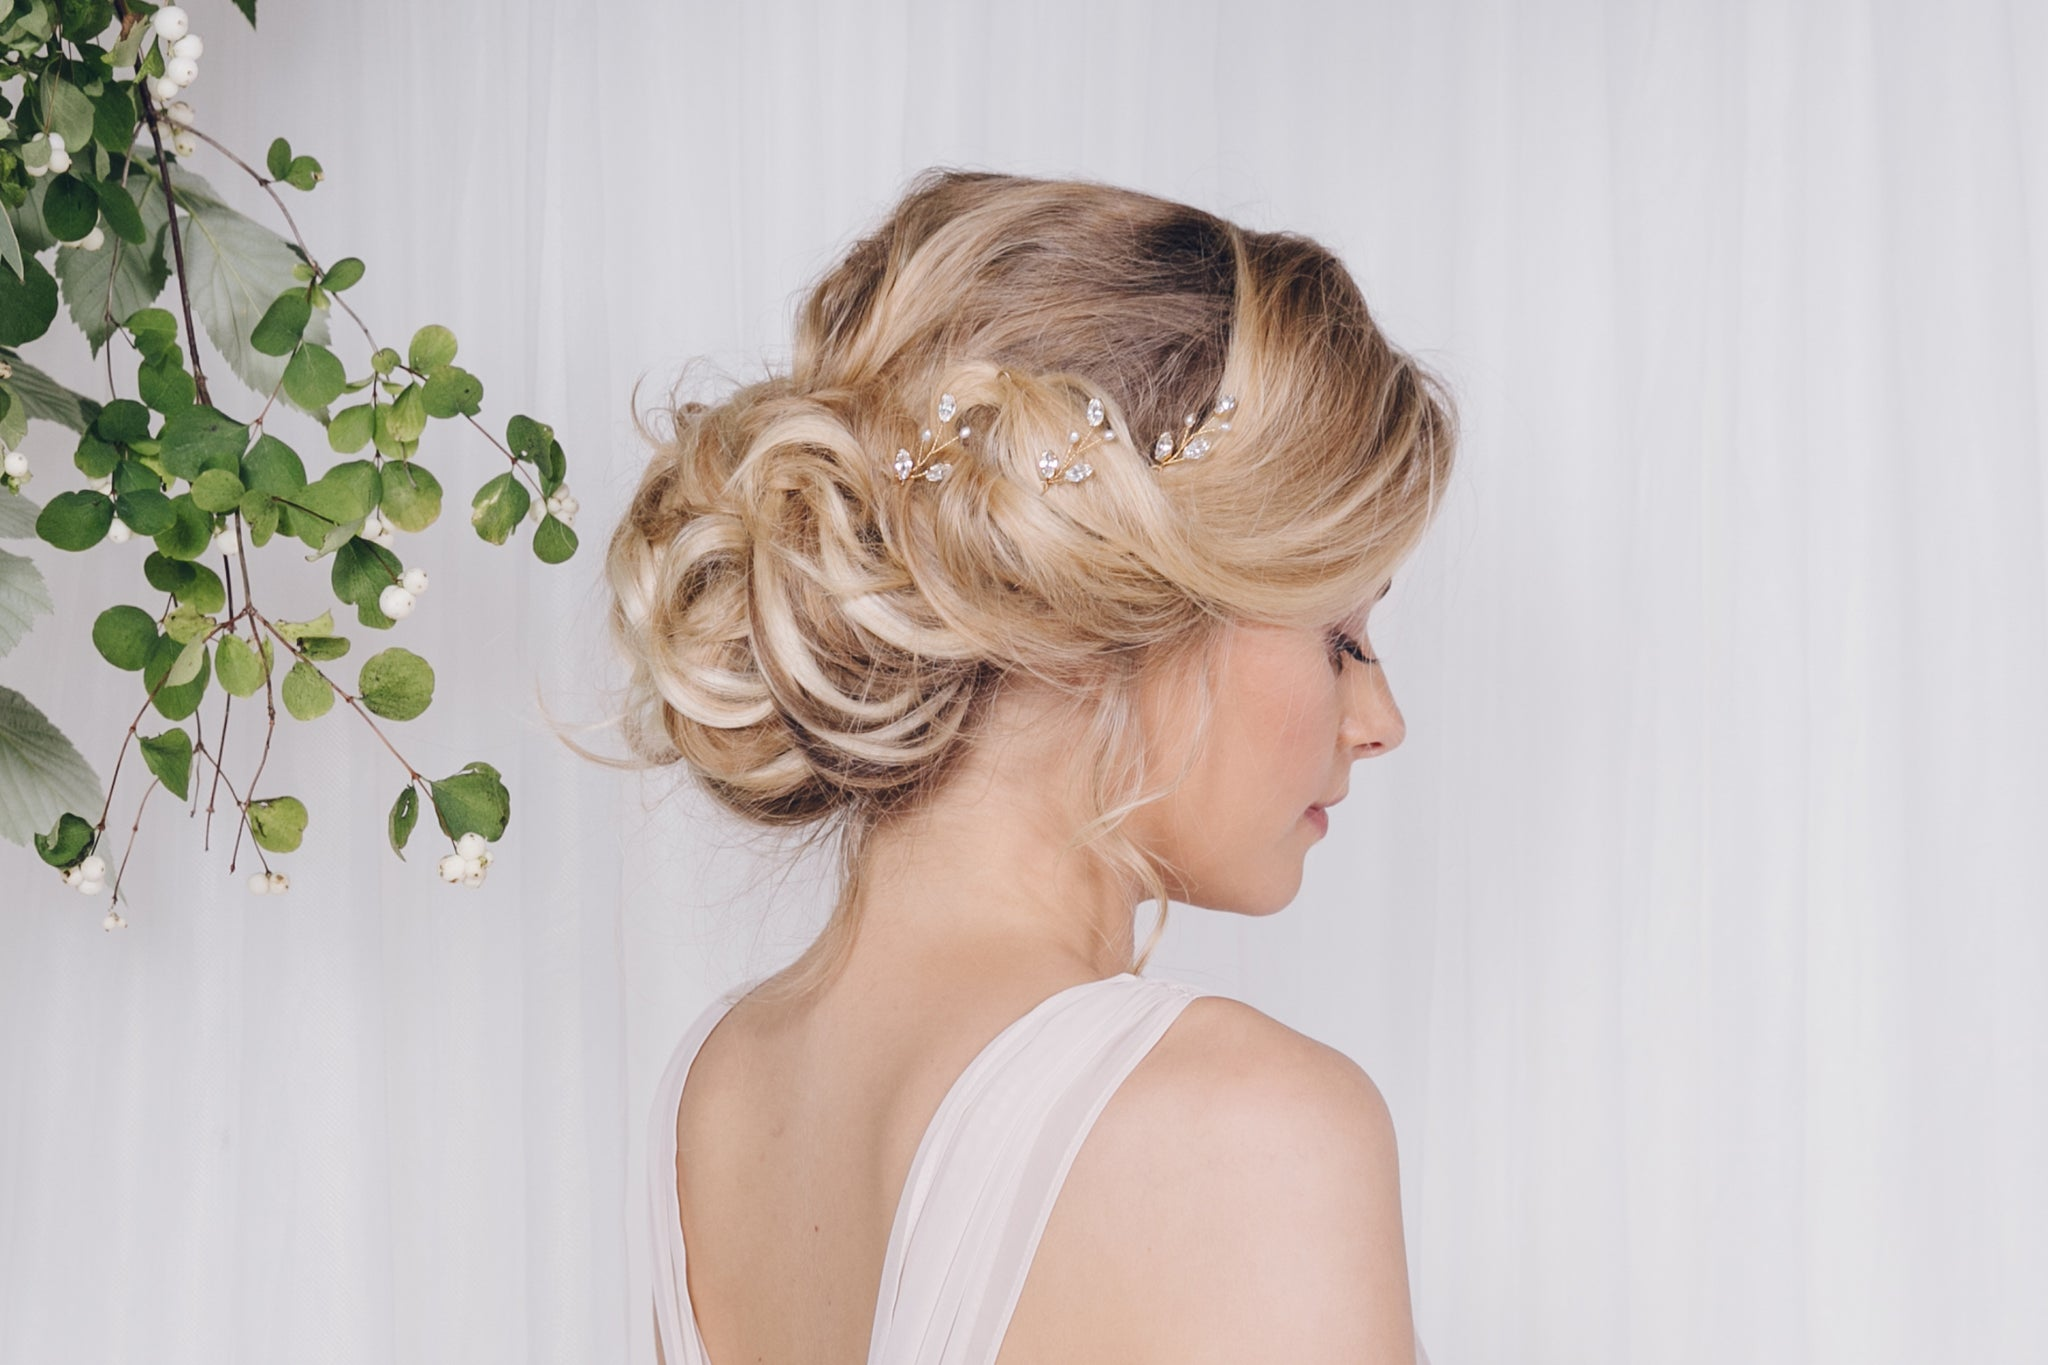 Set of three gold Swarovski crystal and pearl leaf hairpins in the side of an updo wedding hairstyle